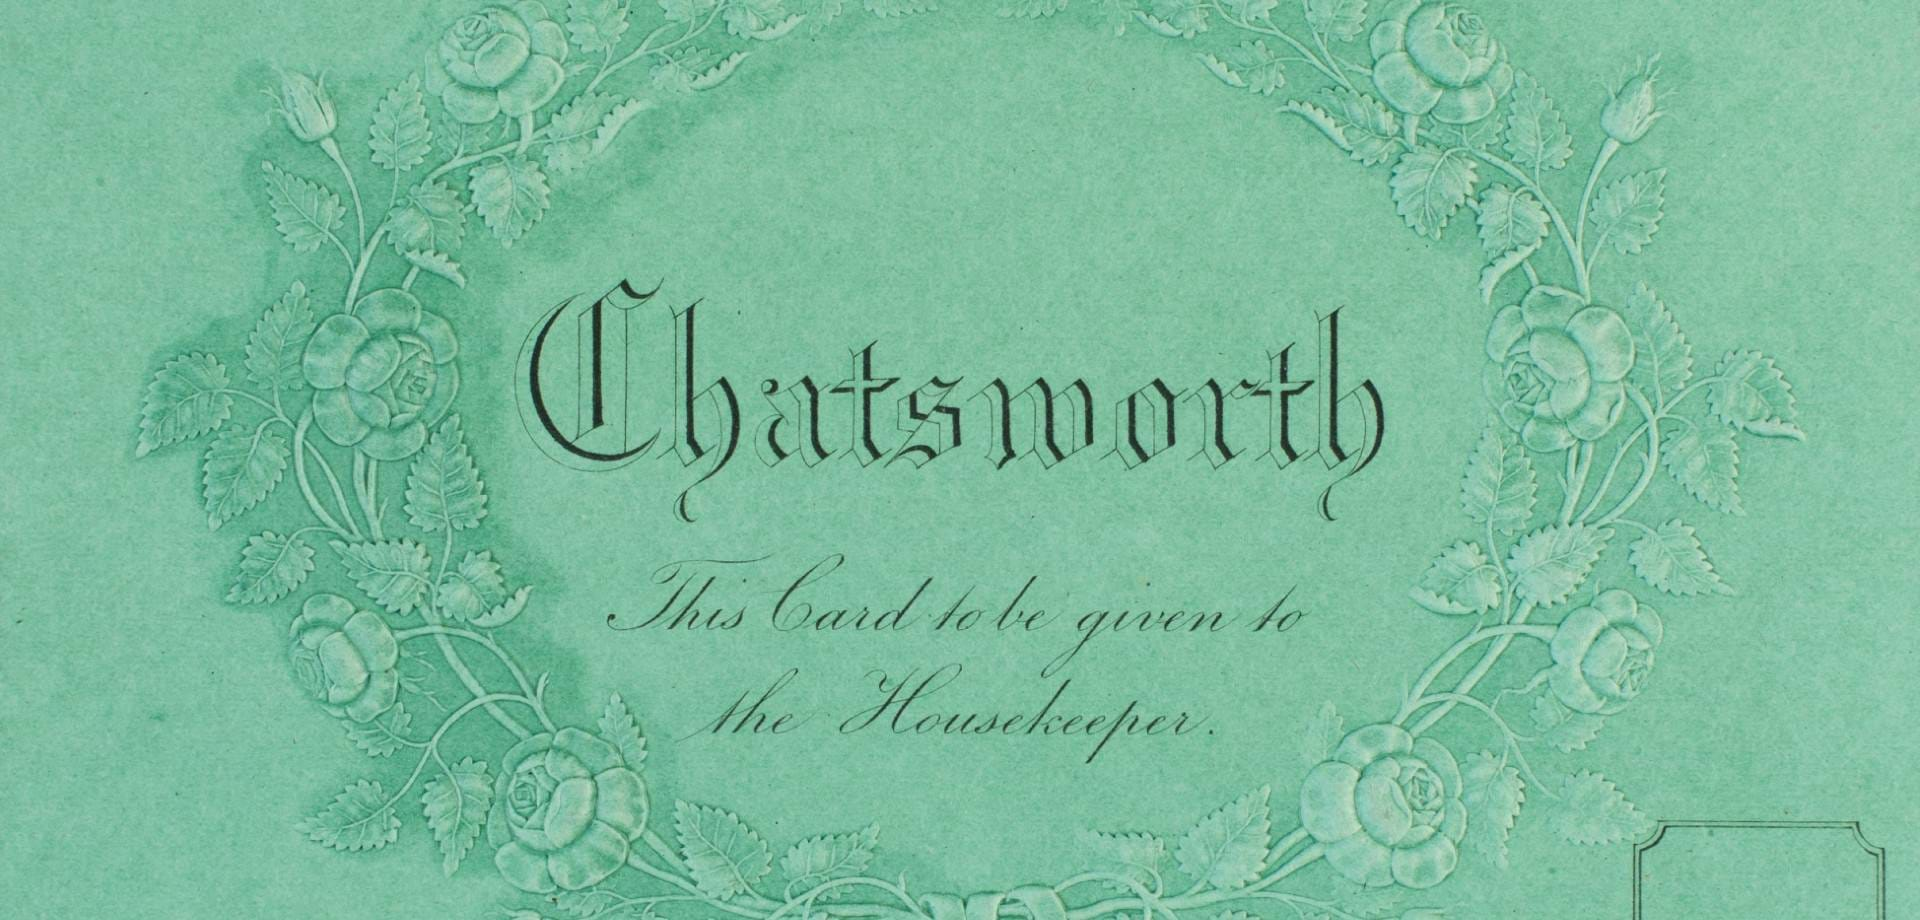 Elizabeth Gaskell's visit to Chatsworth in 1857